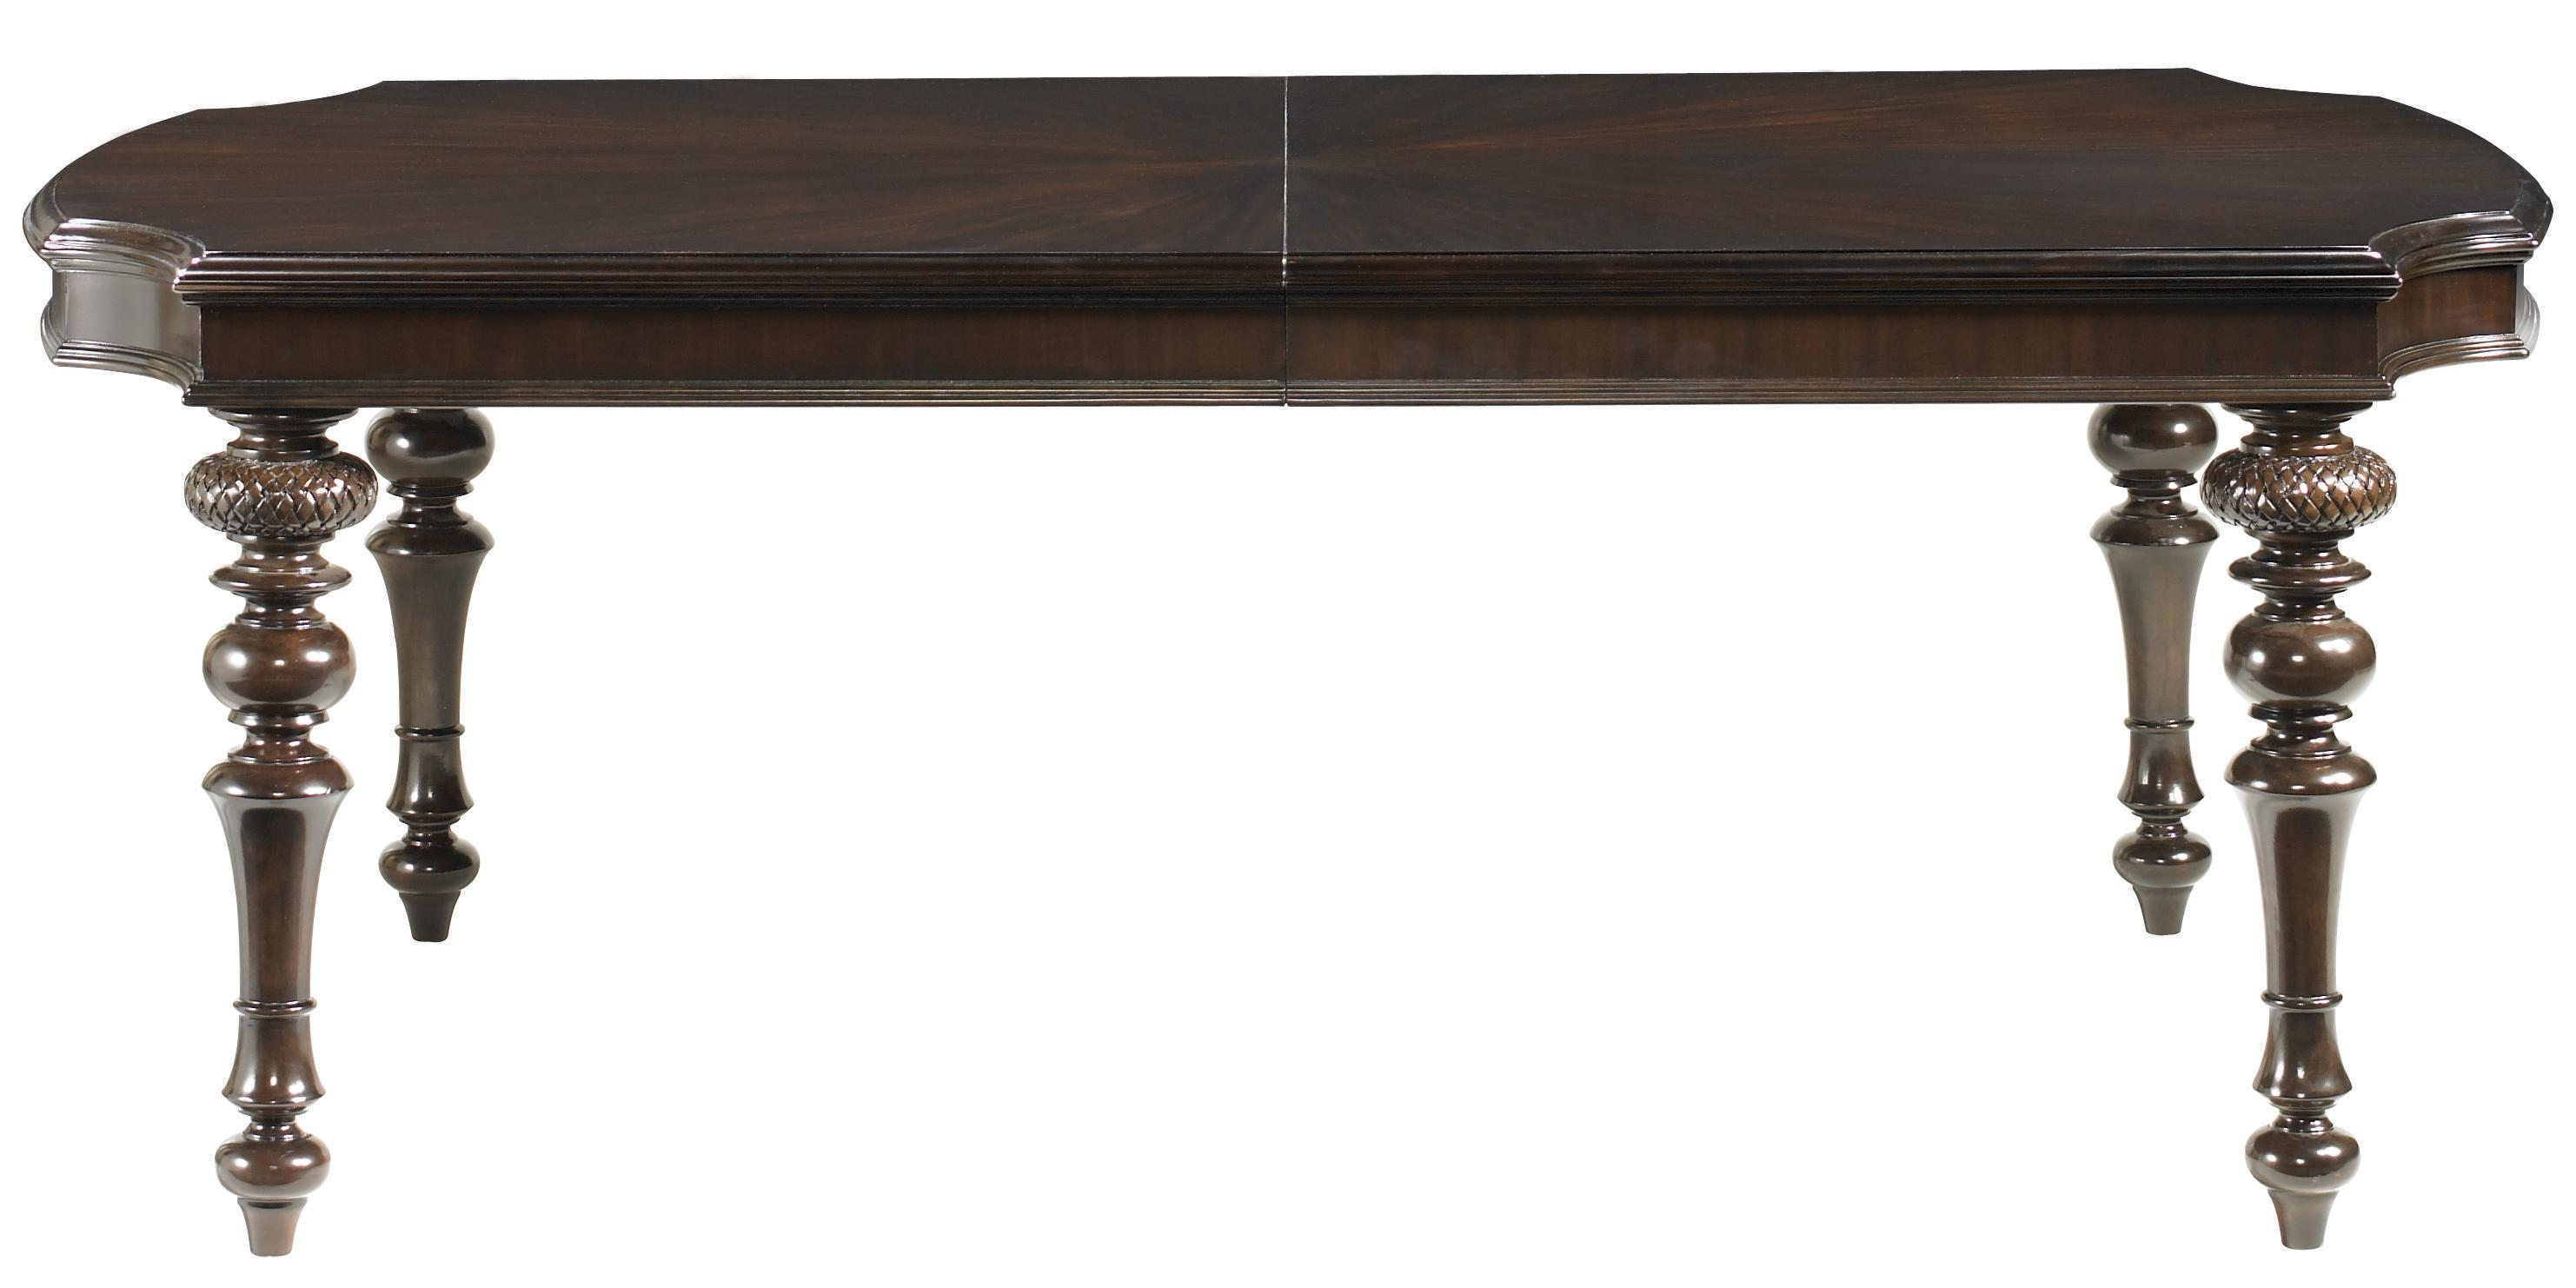 Tommy Bahama Home Royal Kahala Islands Edge Dining Table - Item Number: 537-877